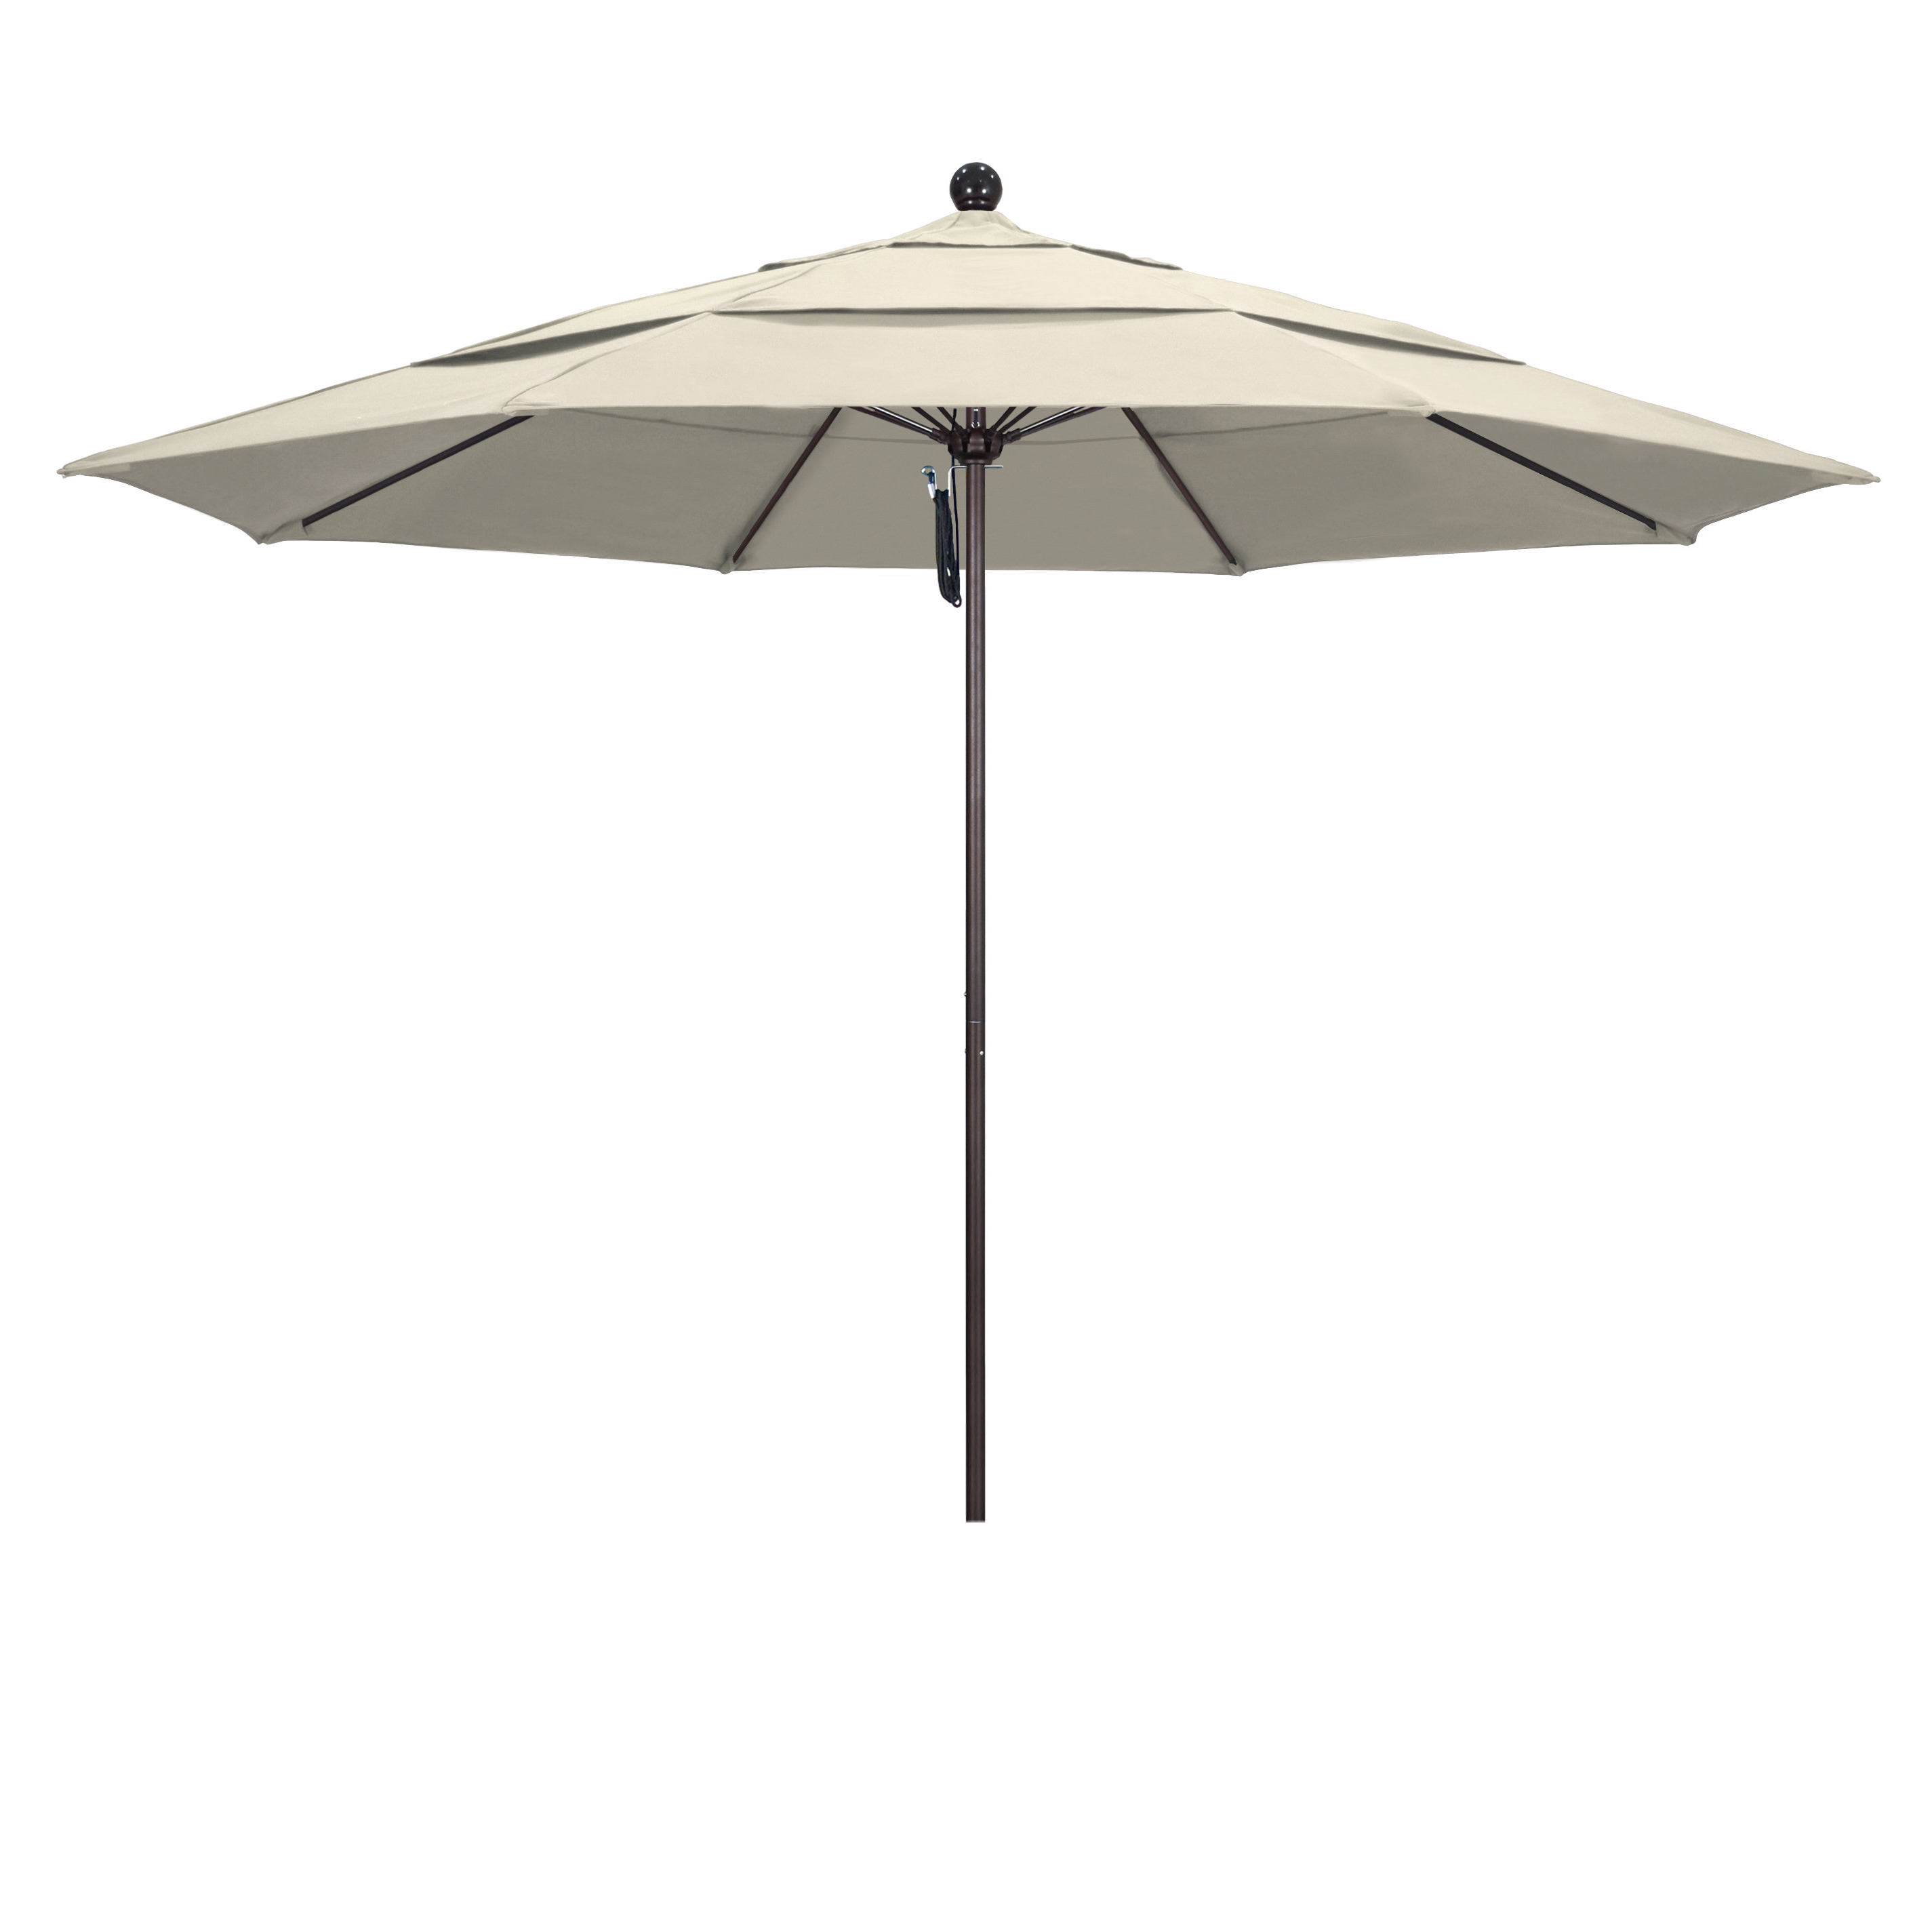 Duxbury 11' Market Umbrella Throughout Current Caravelle Market Sunbrella Umbrellas (Gallery 8 of 20)